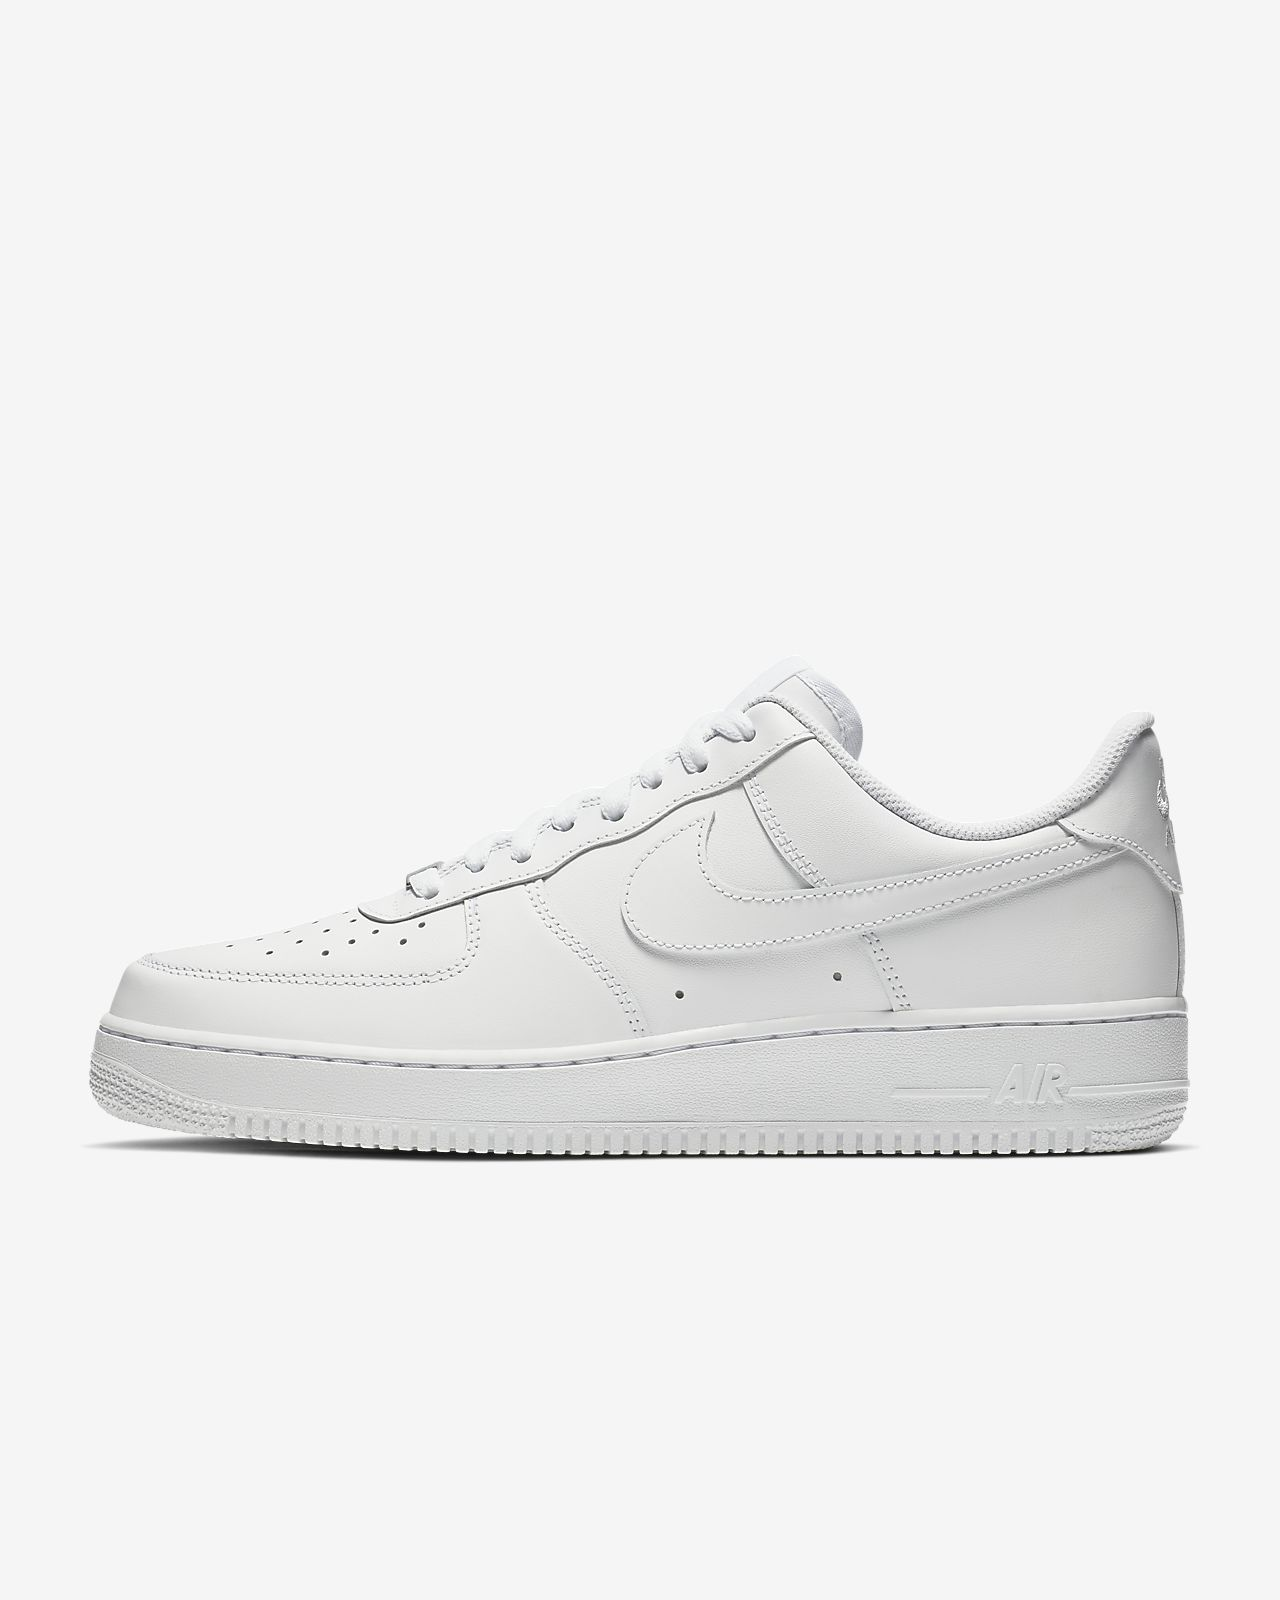 d1728a0647e43 Nike Air Force 1 '07 Men's Shoe. Nike.com